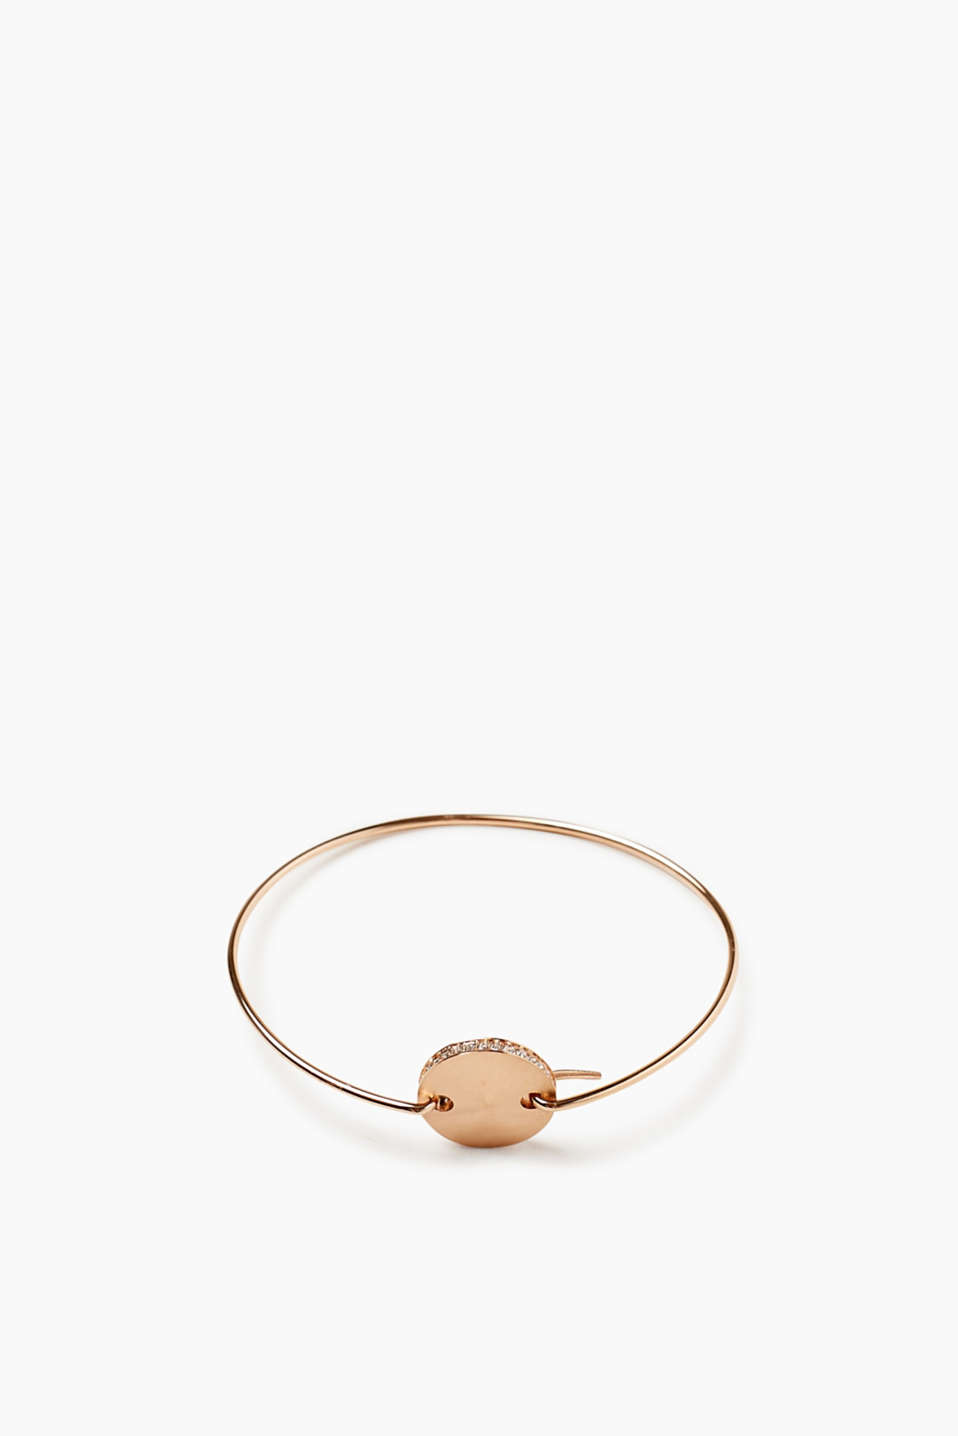 We love rose gold! This bracelet is very stylish thanks to its zirconia-set pendant.